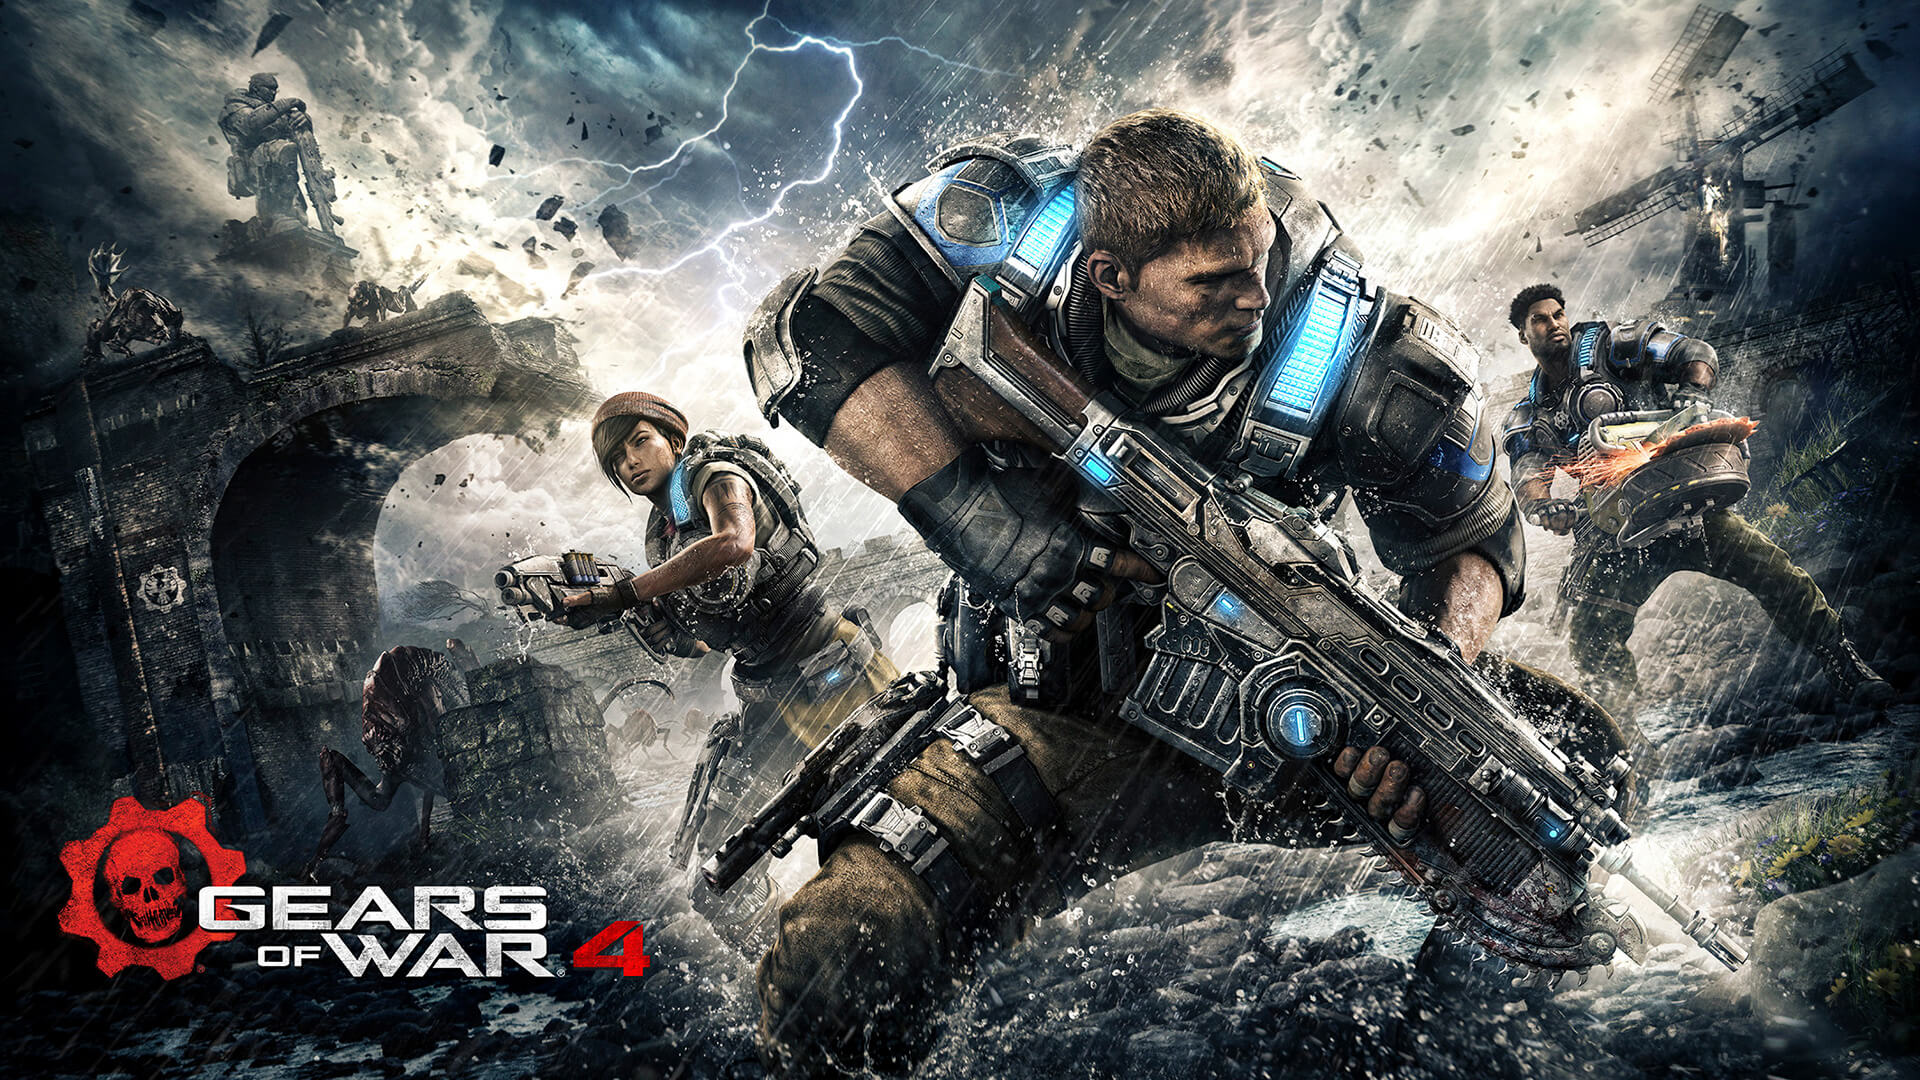 Gears of War 4 japan 1 - Gears Of War 4's Japanese Ban Lifted: Uncut Release Coming on May 25